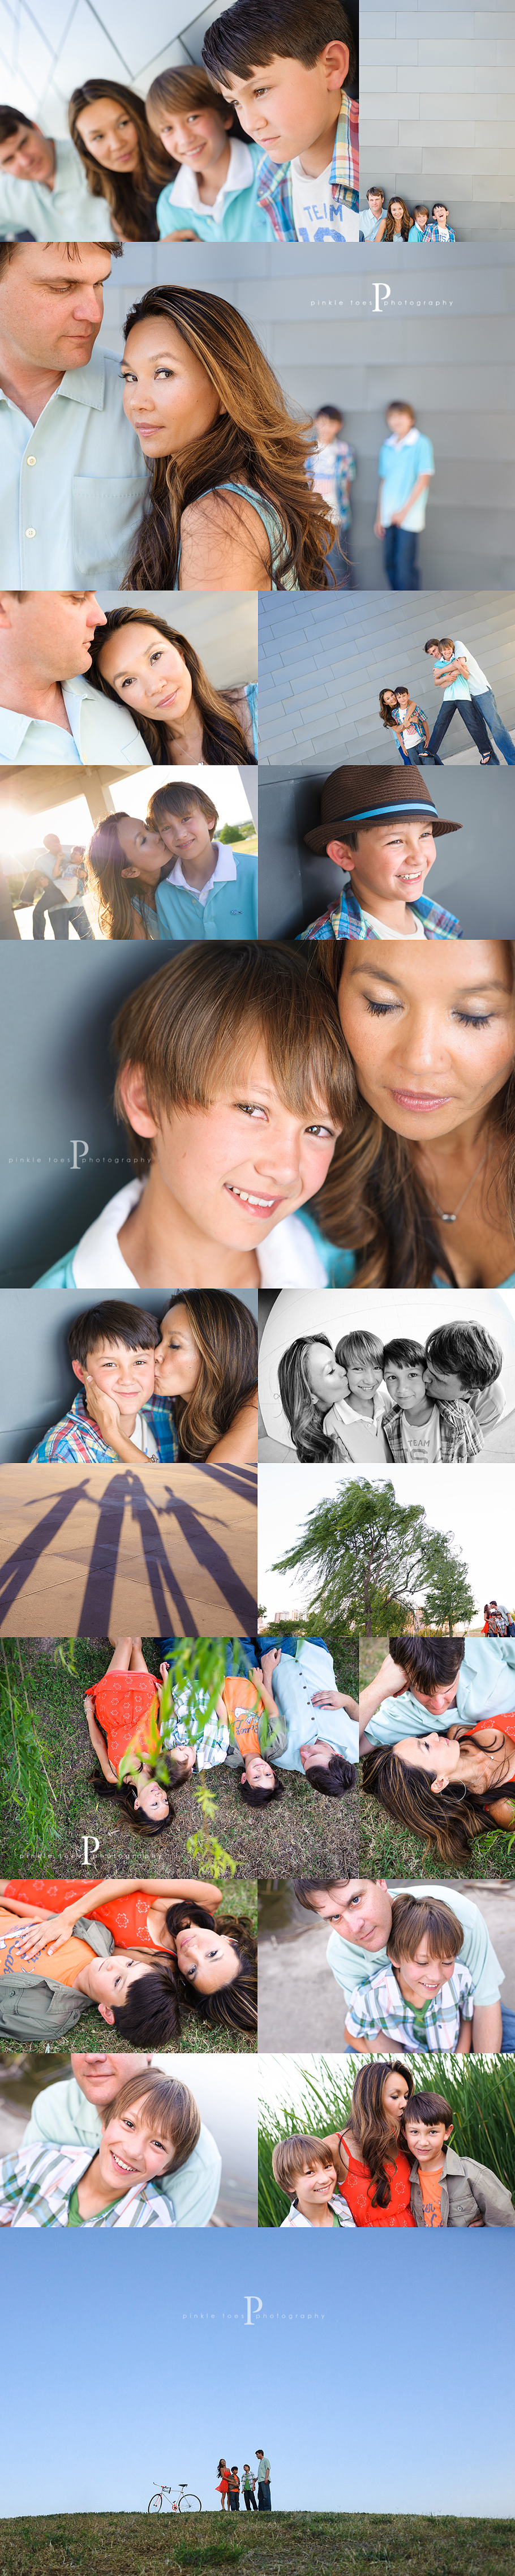 mc-austin-urban-modern-family-candid-photographer.jpg